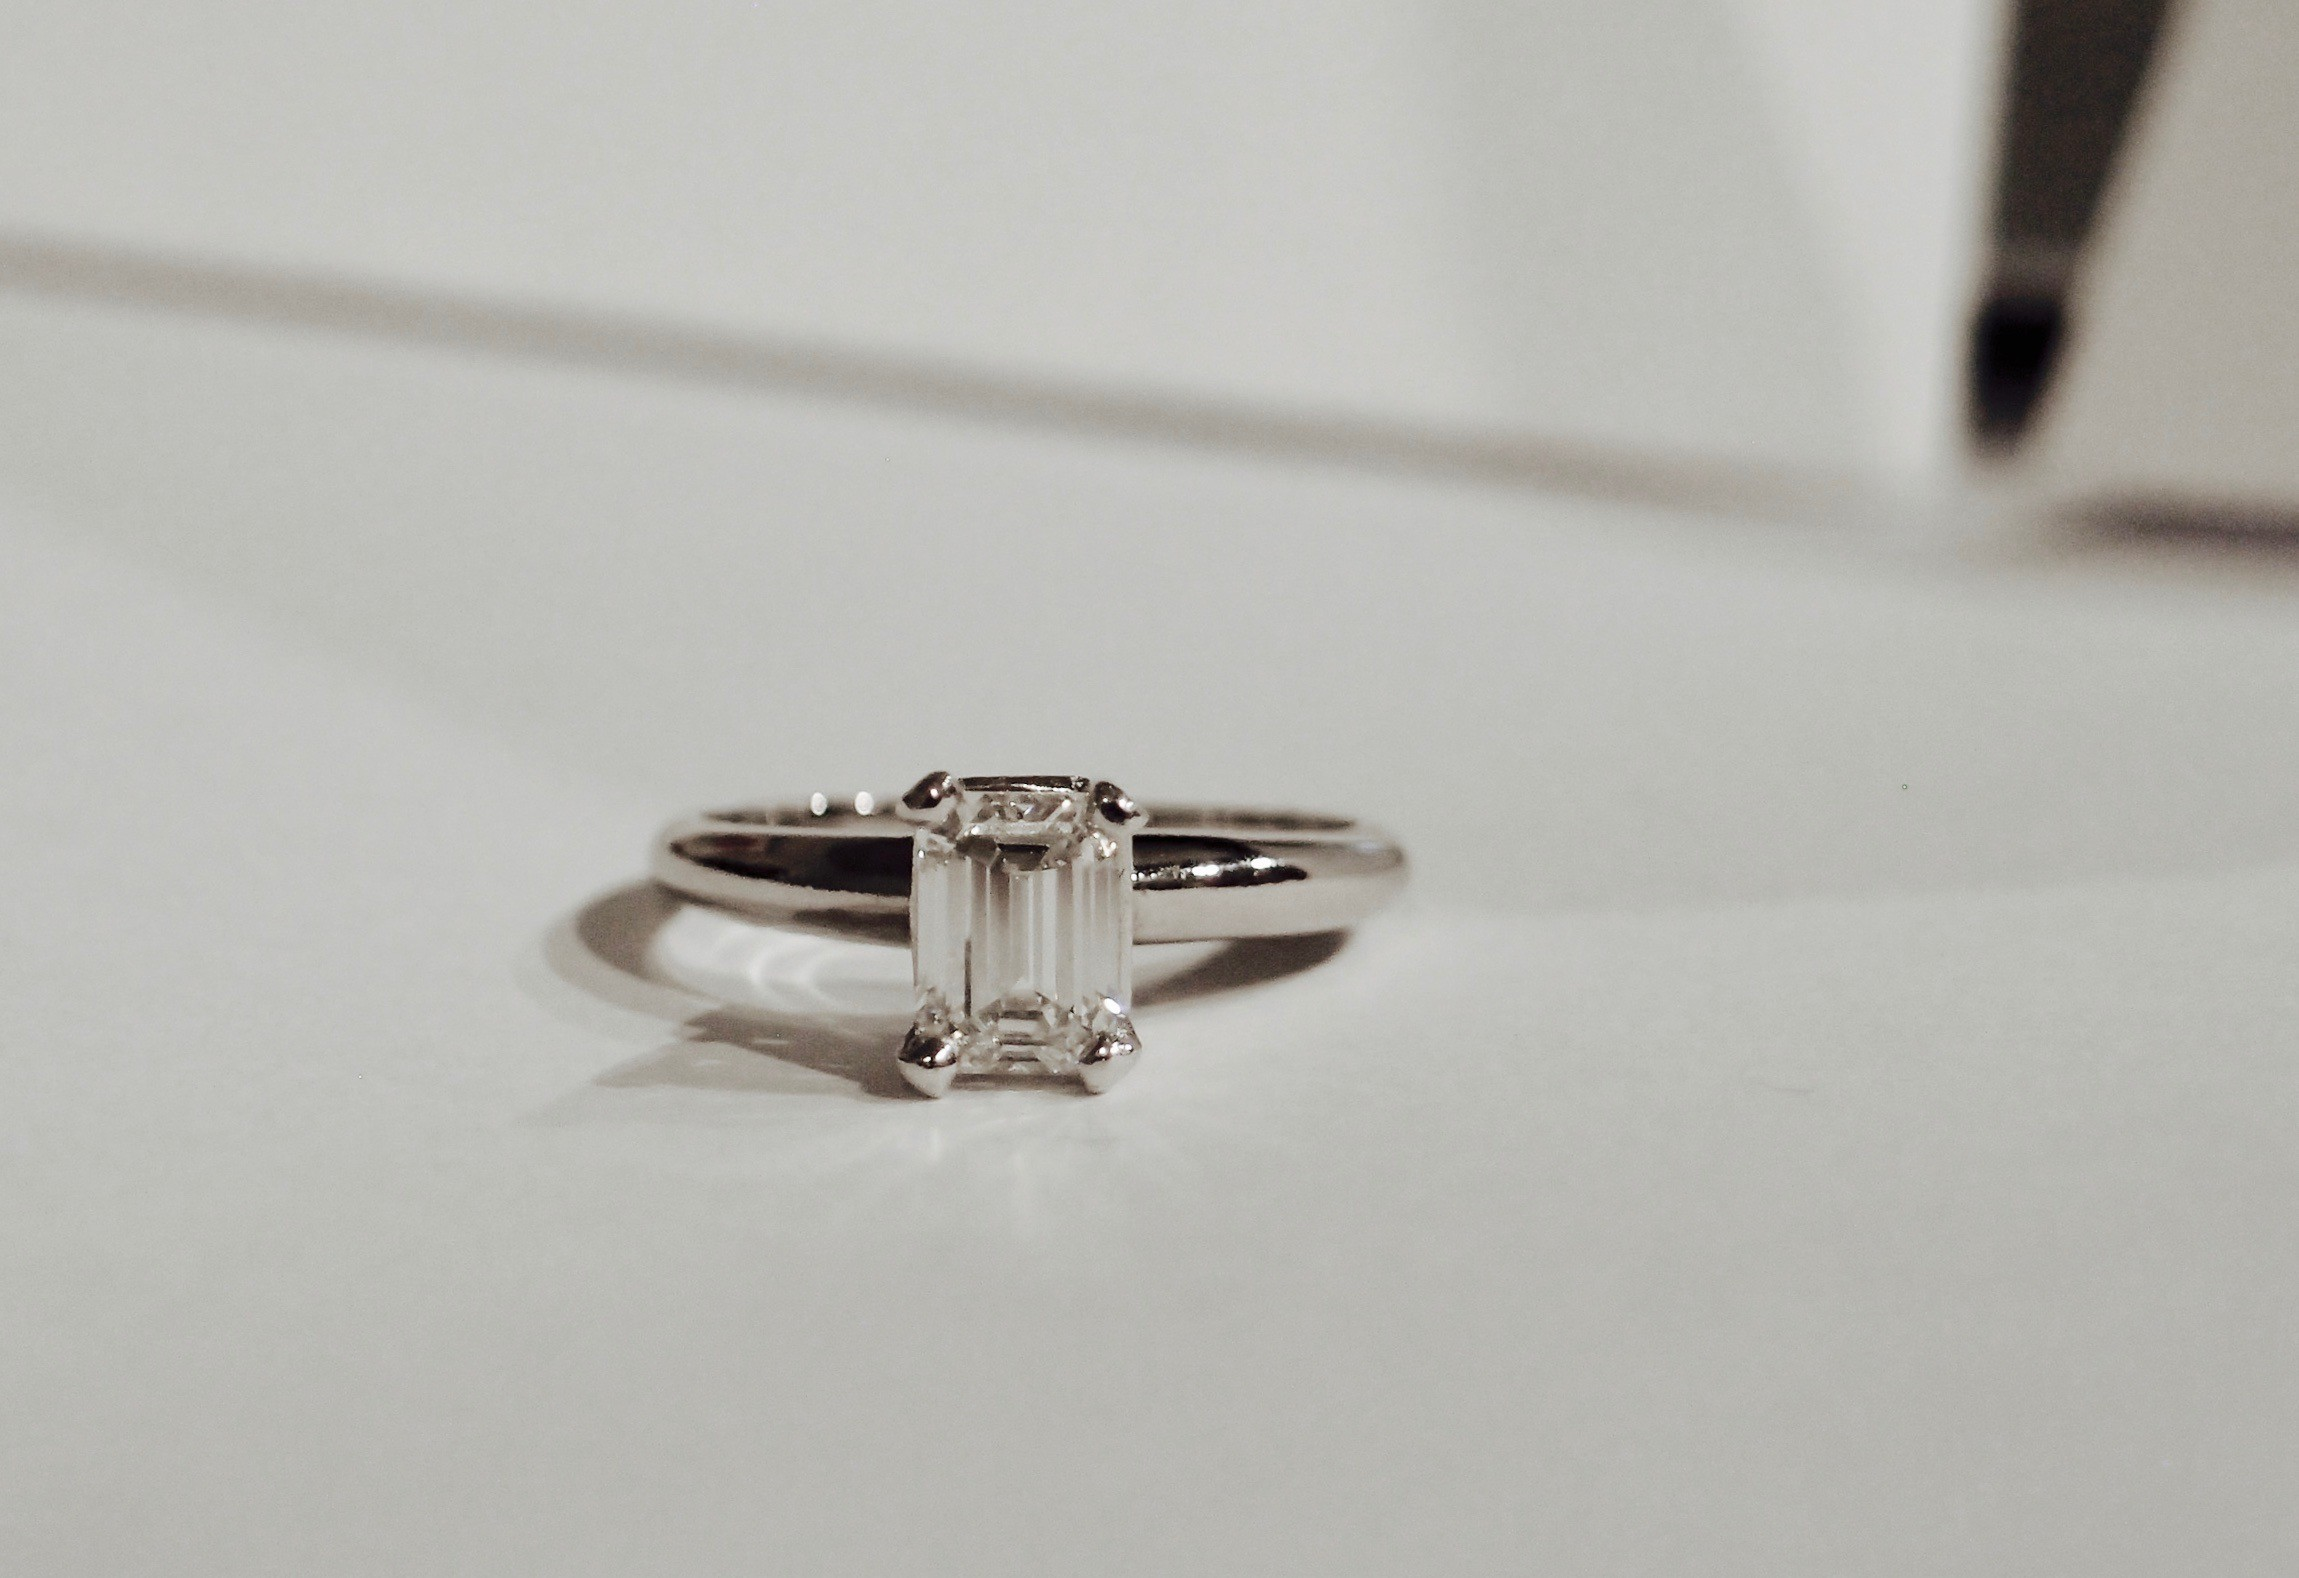 Emerald Cut 1.04 ct Engagement Ring- GIA Certified